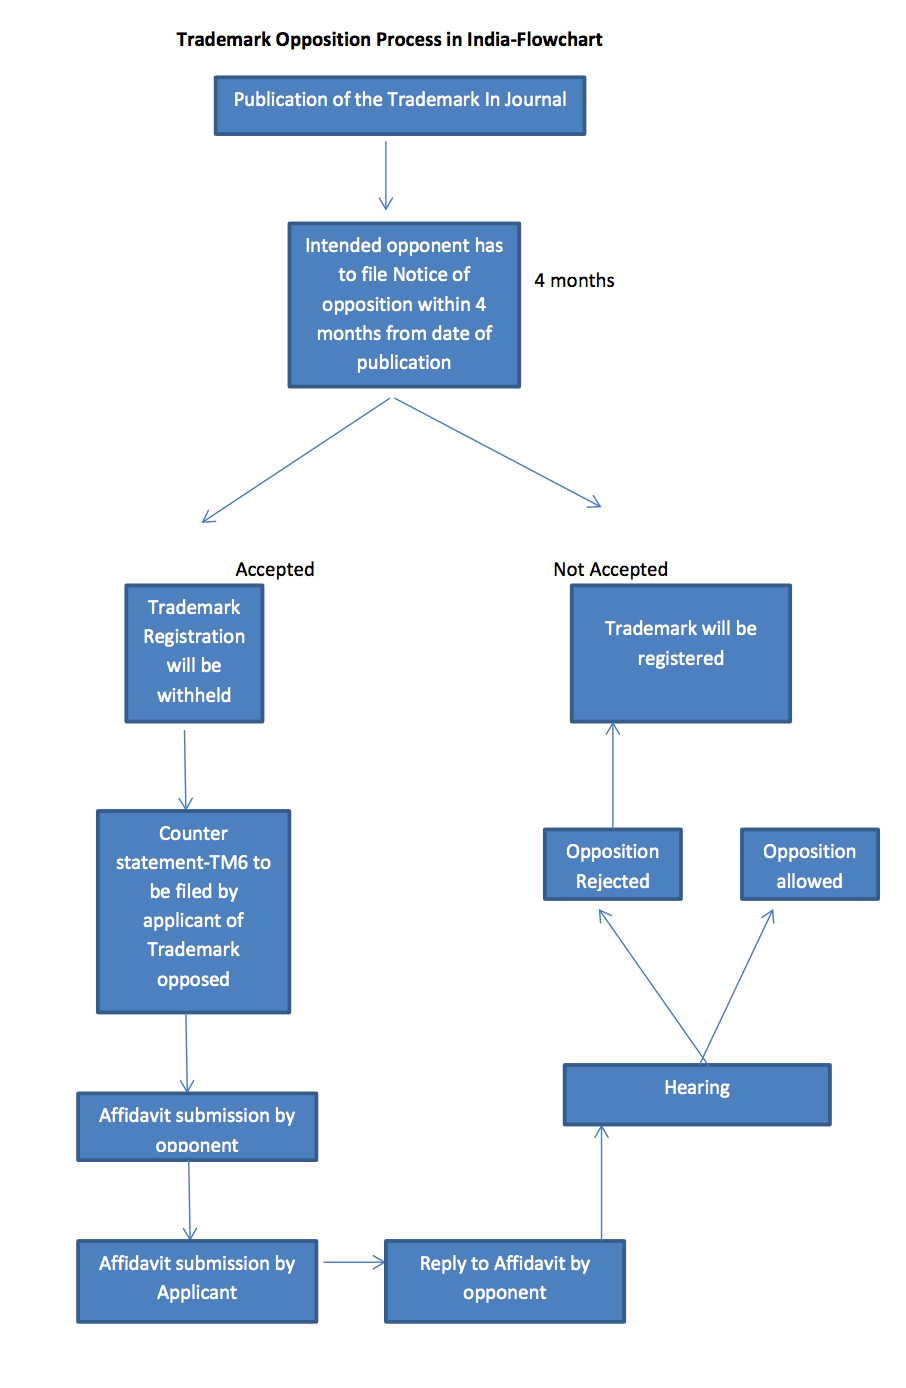 Trademark Opposition Process Flowchart